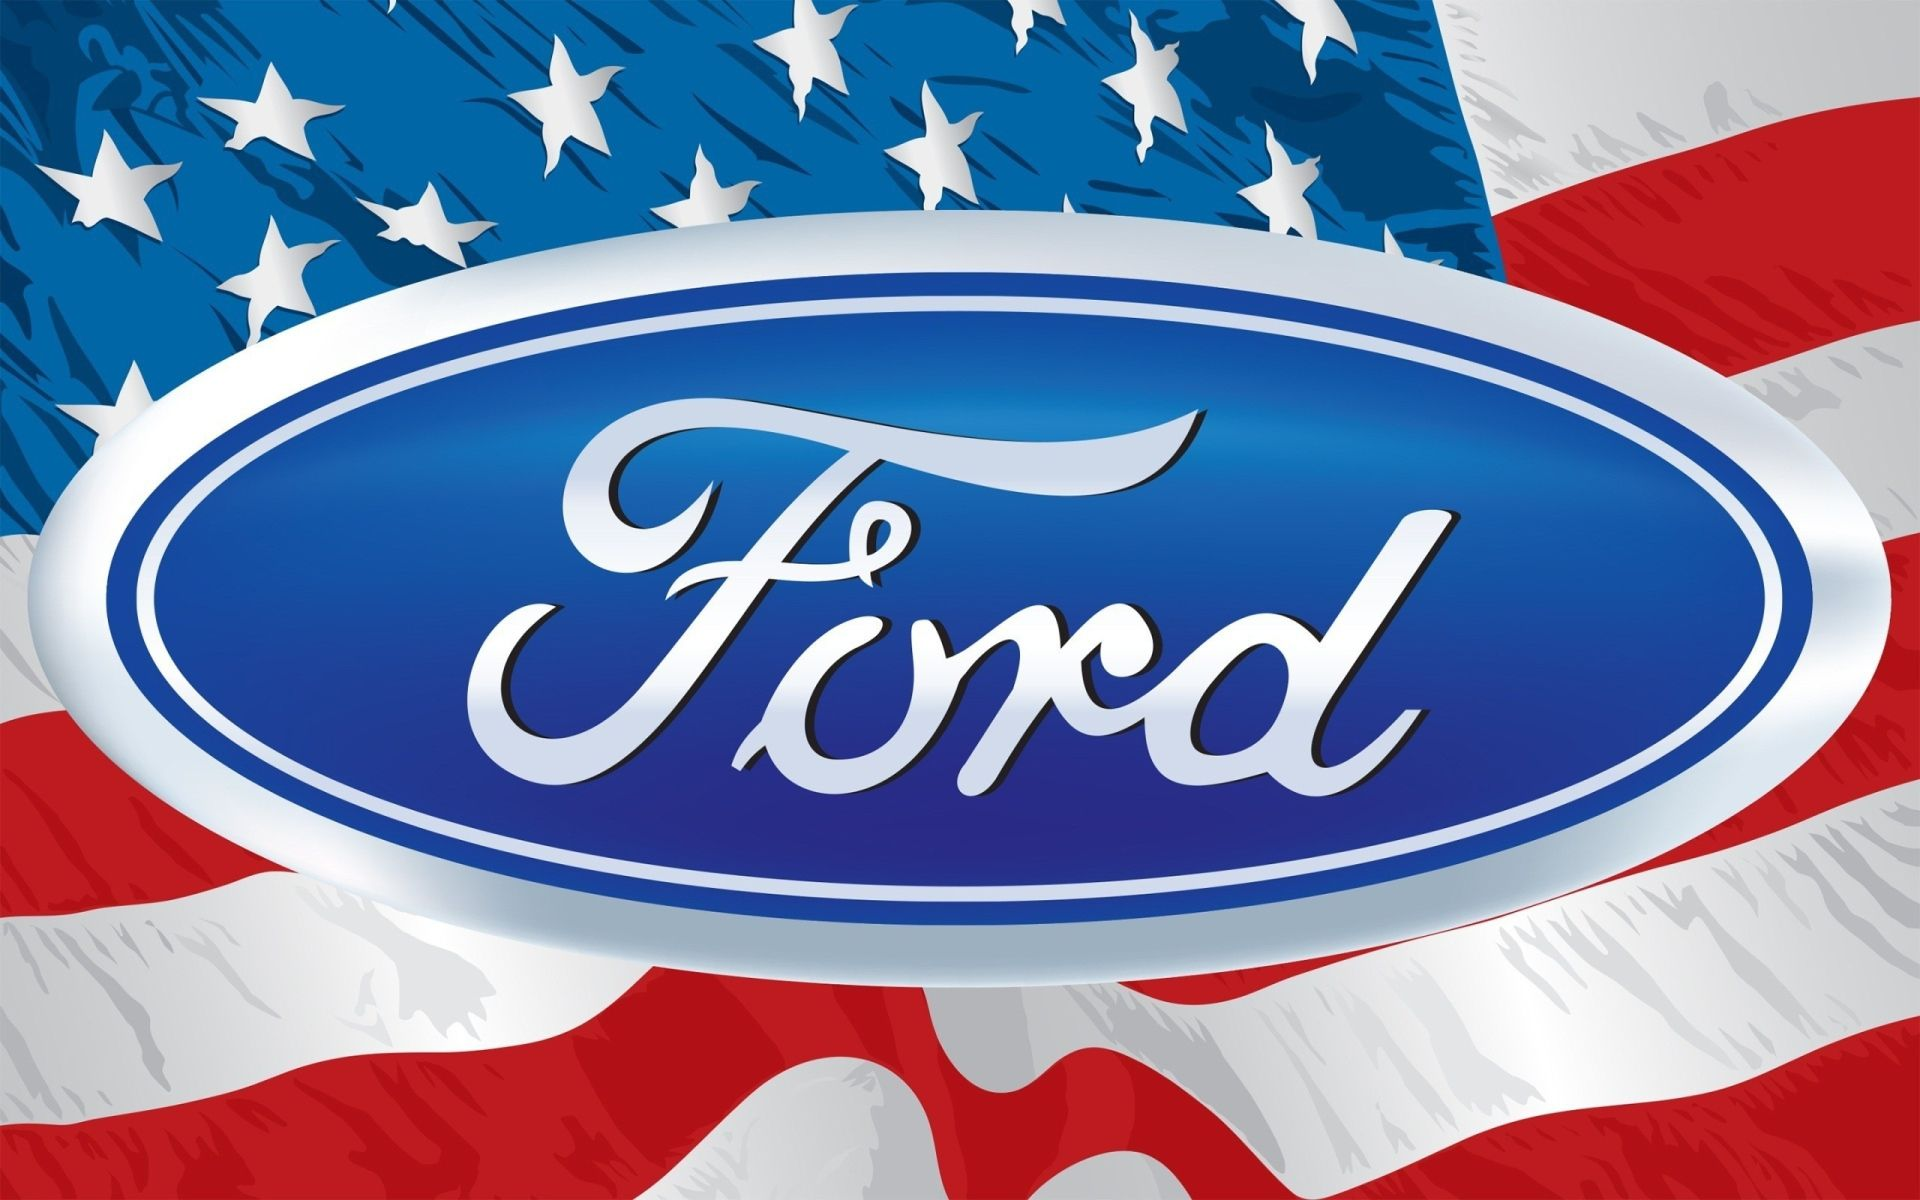 Ford Logo On The Background Of The Usa Flag Desktop Wallpapers